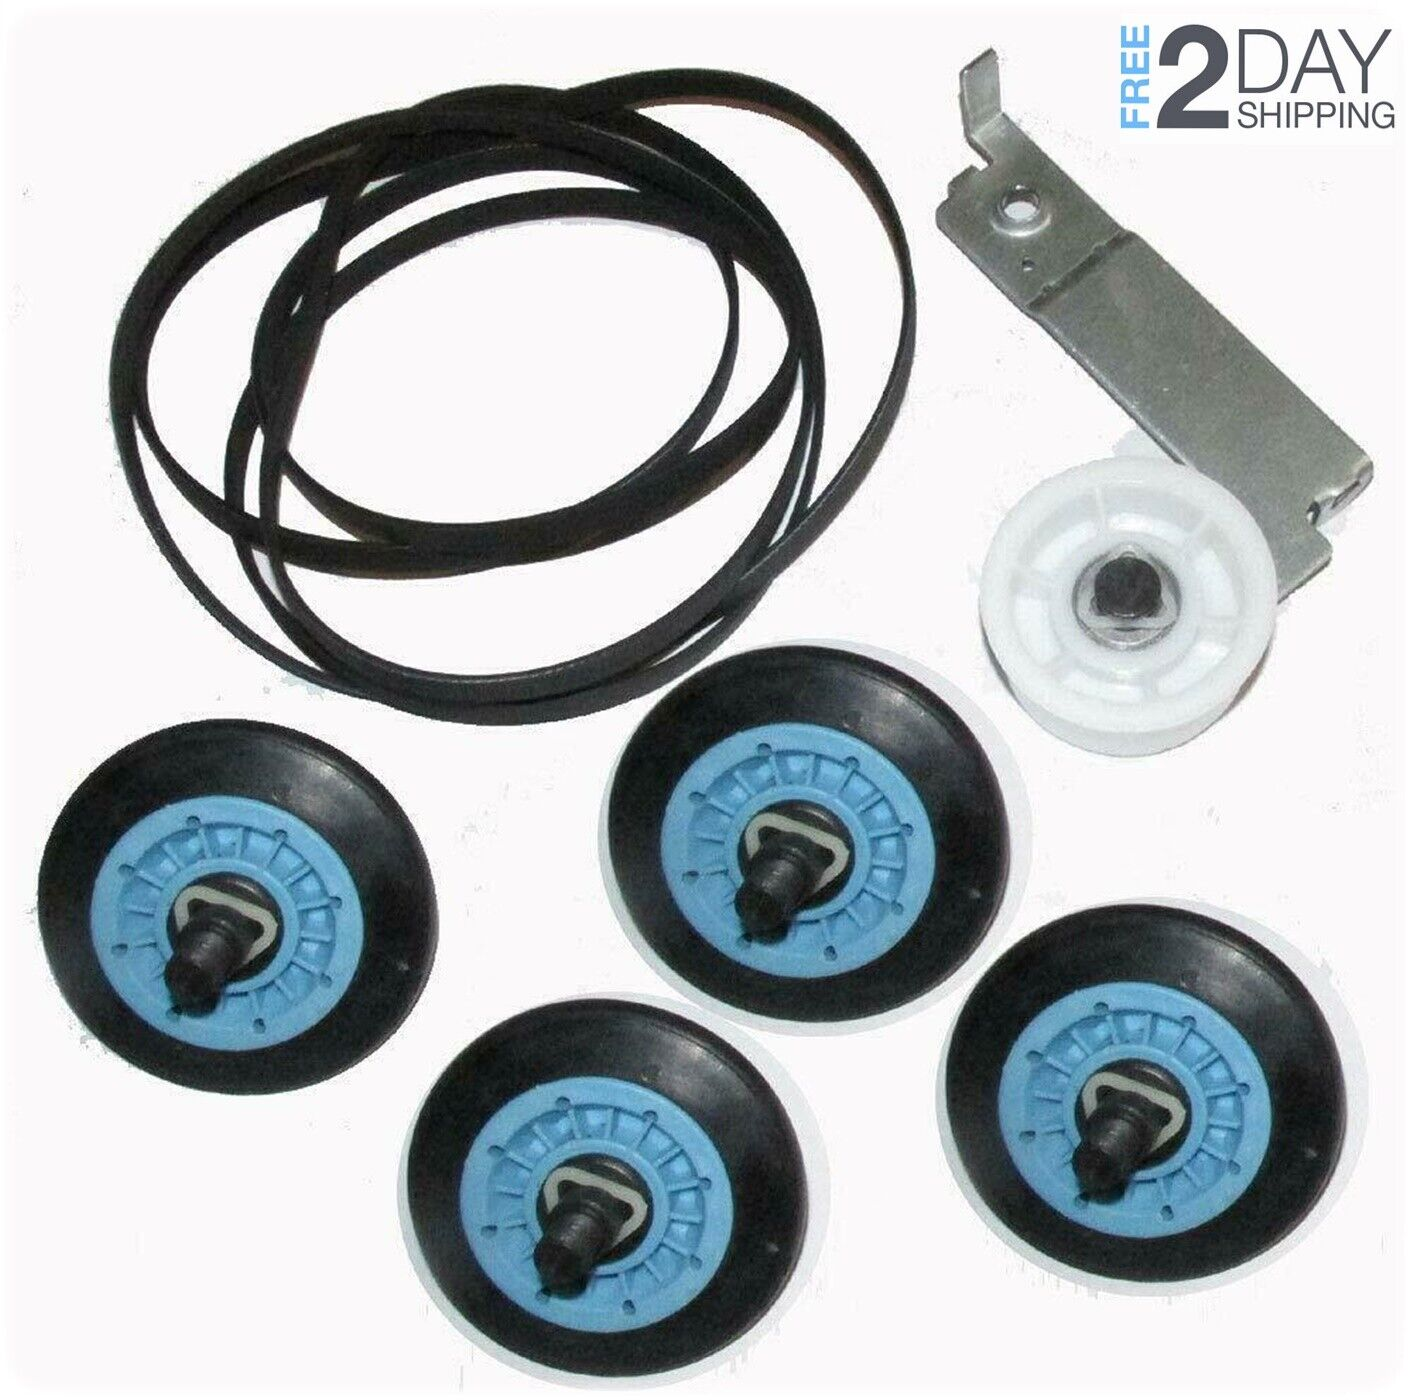 Clothes Dryer Repair Maintenance Kit For Maytag MDE9700AYW